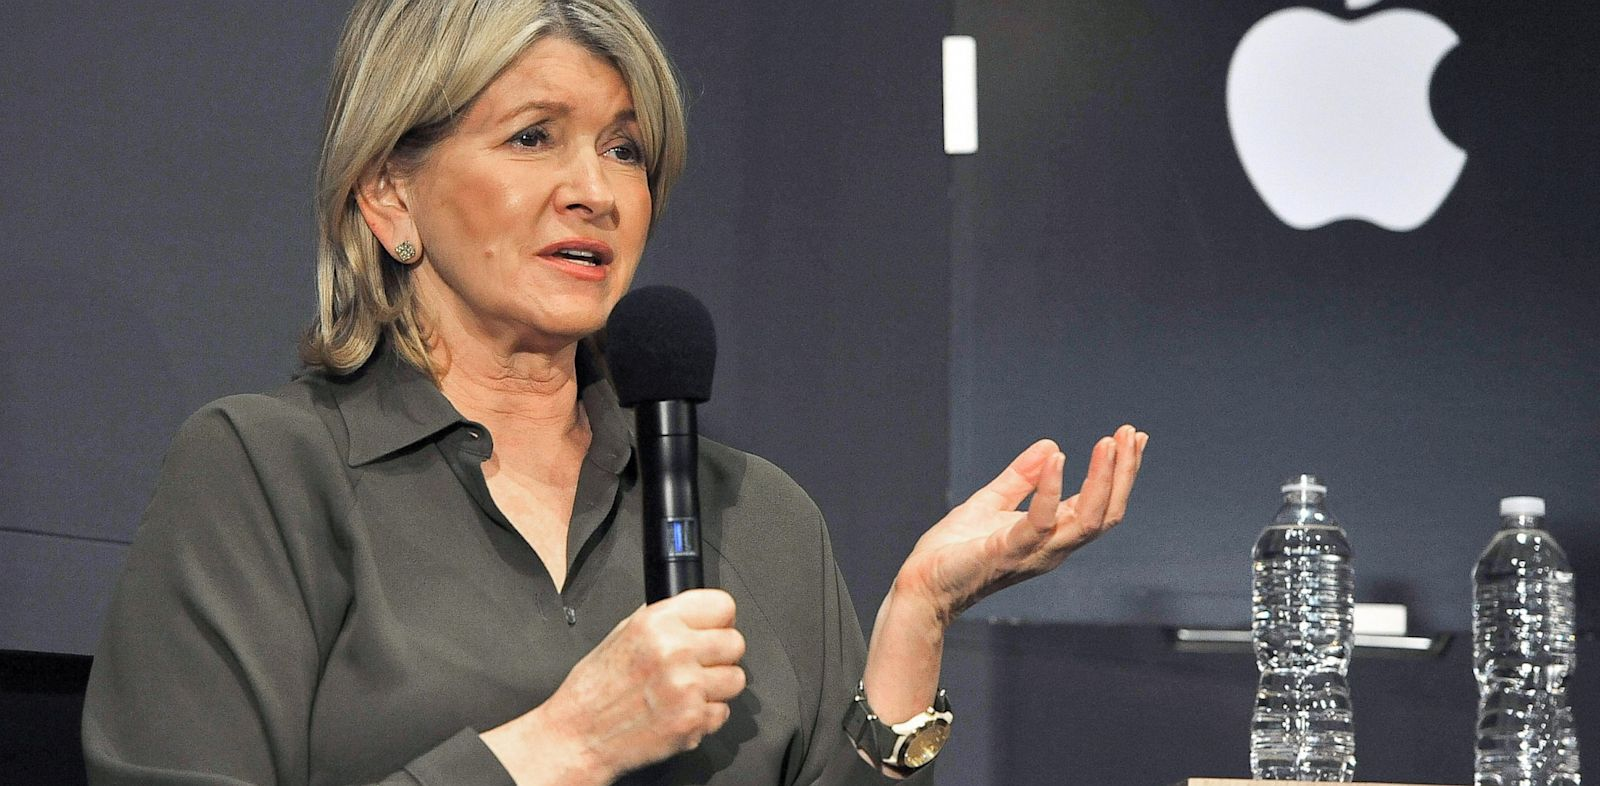 PHOTO: Martha Stewart visits Apple Store Soho to discuss her new iPad apps,Dec. 8, 2010 in New York City.